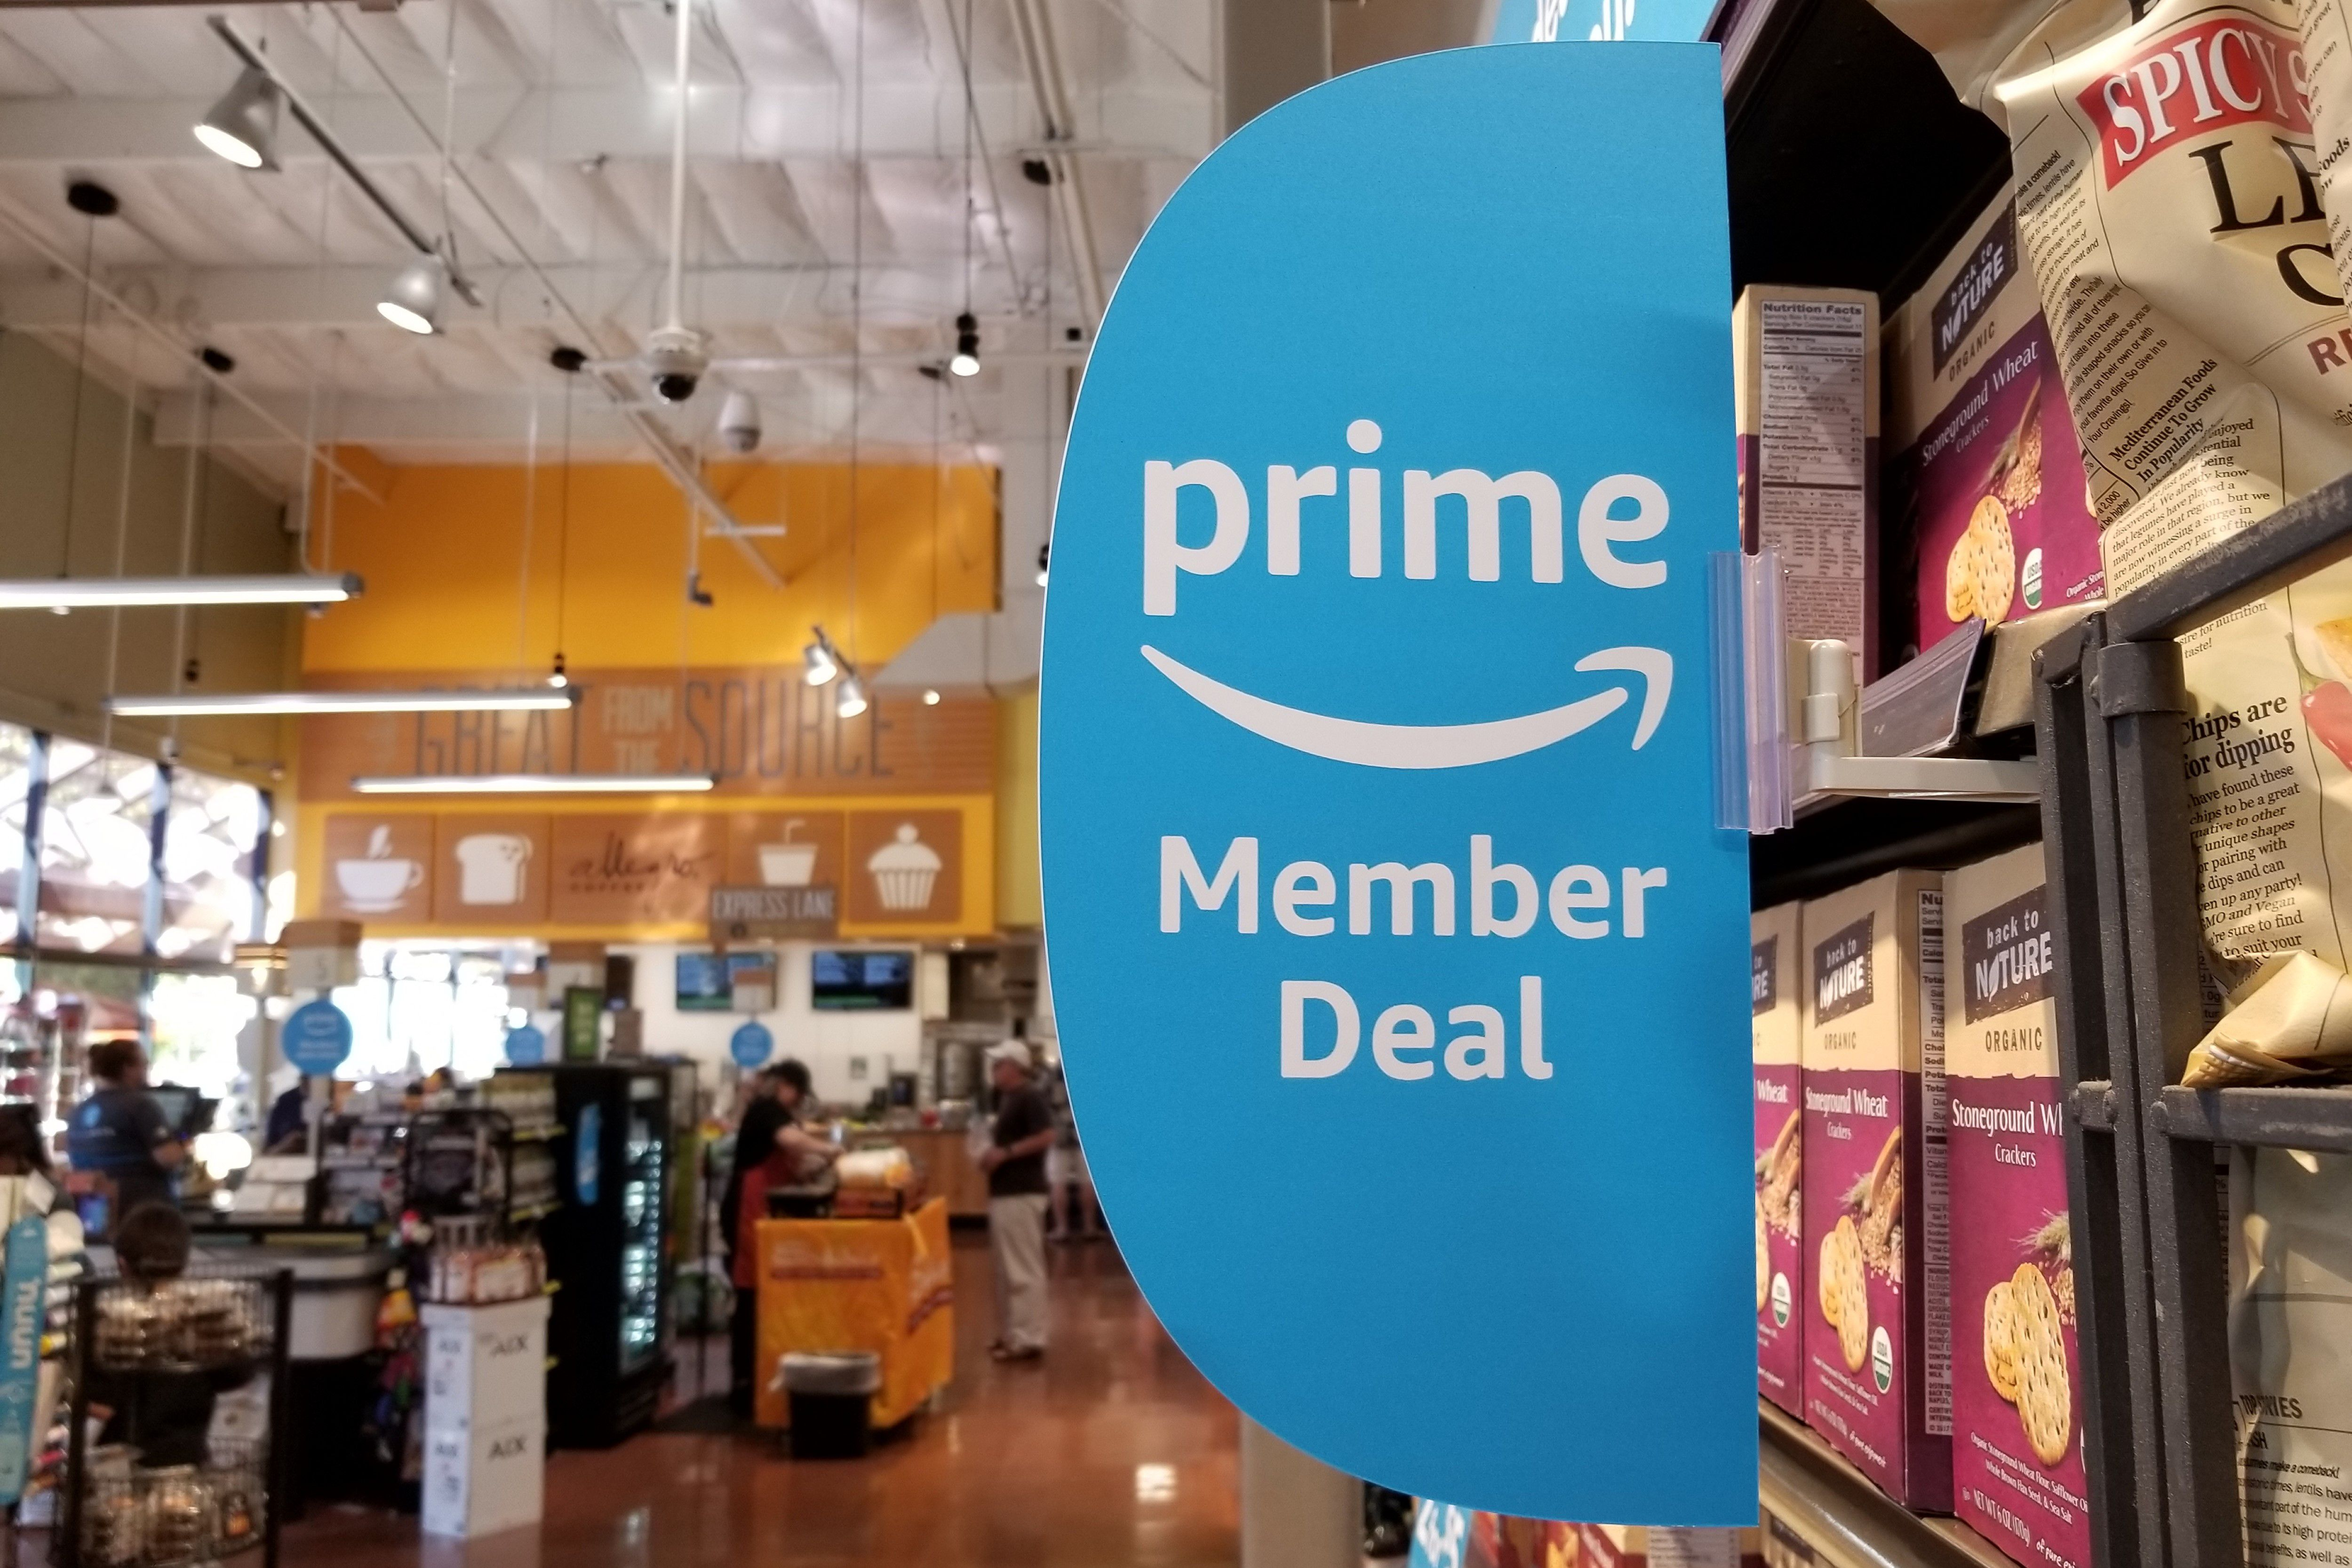 Prime Member Deal sign at Whole Foods